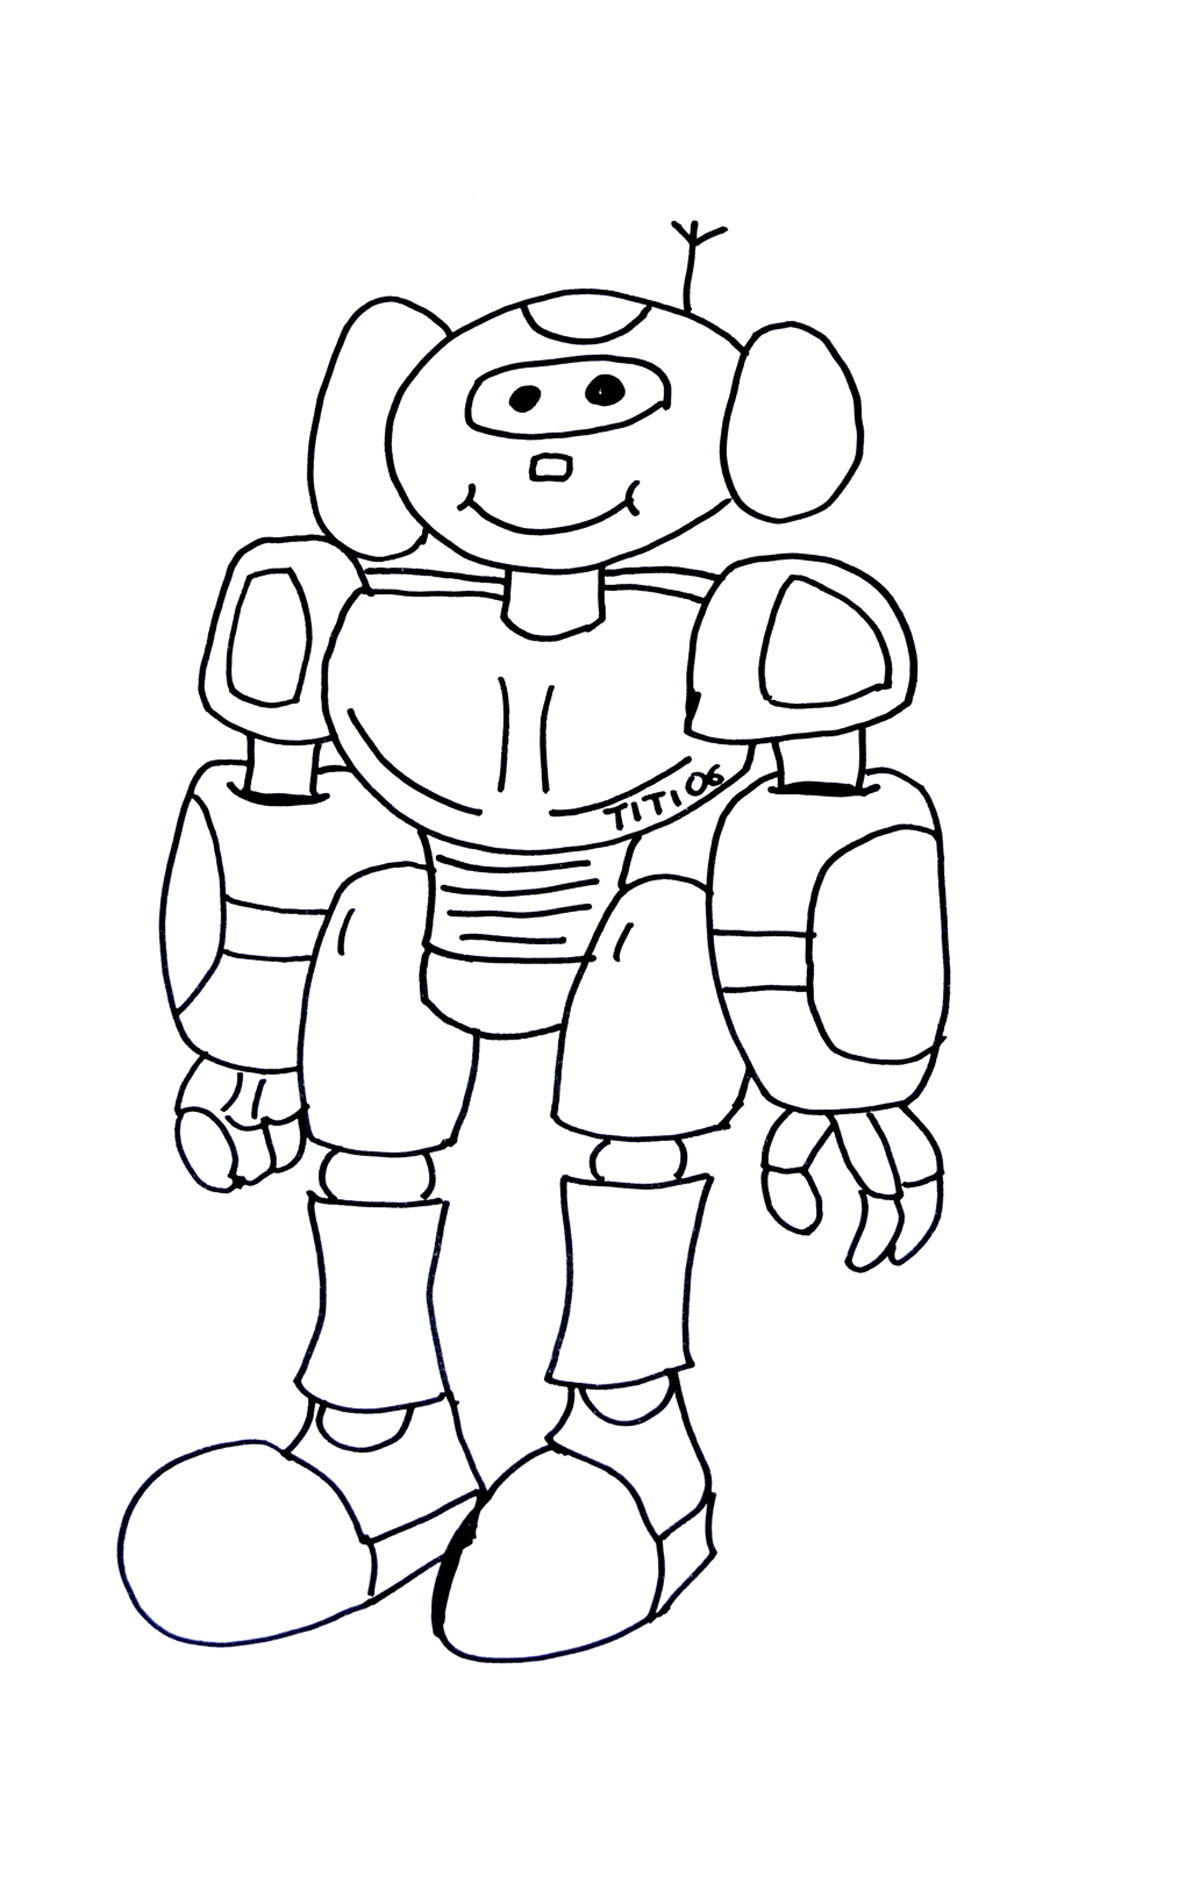 Robots to color for kids - Robots Kids Coloring Pages